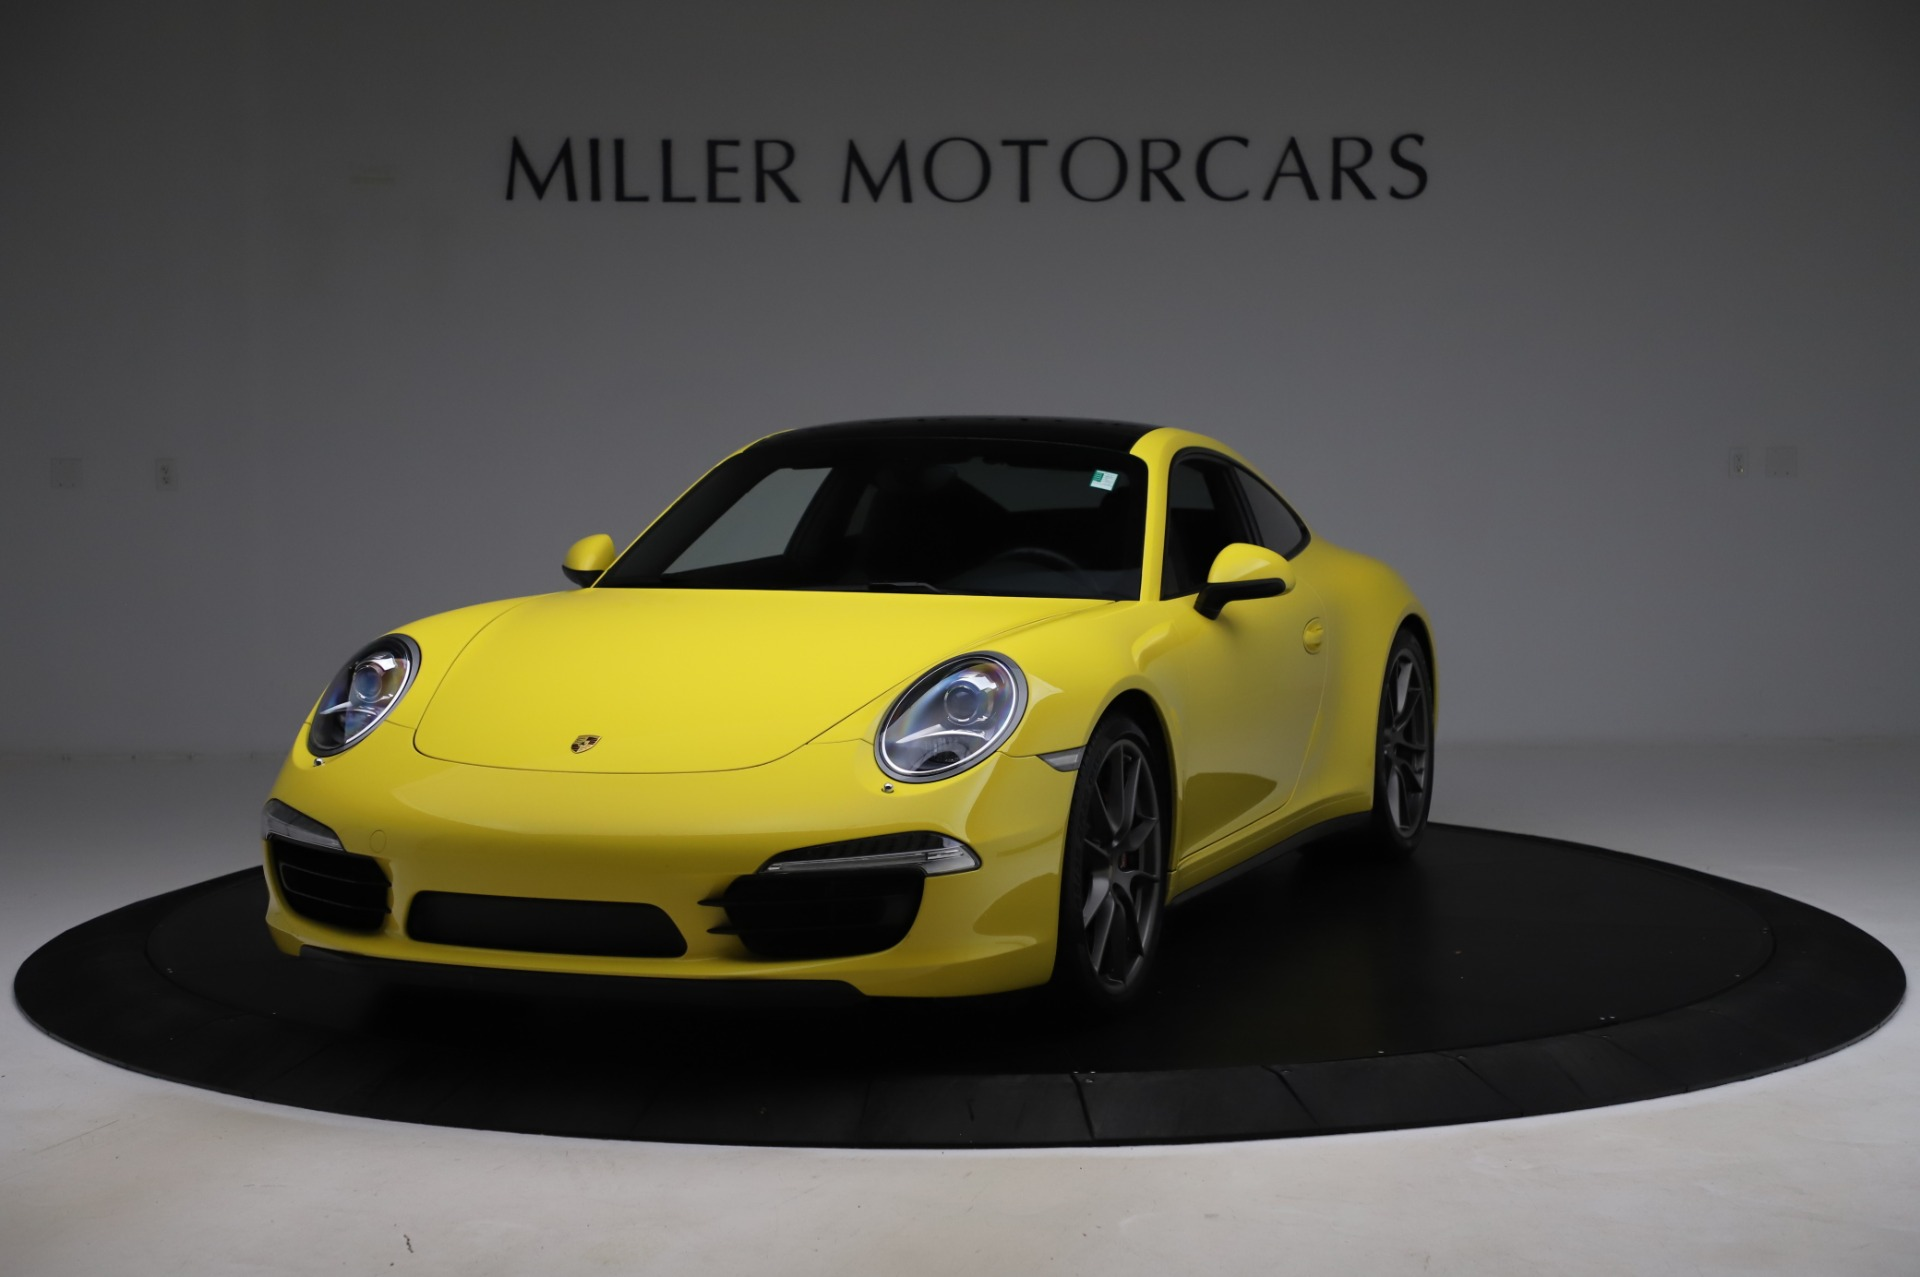 Used 2013 Porsche 911 Carrera 4S for sale $74,900 at Bentley Greenwich in Greenwich CT 06830 1